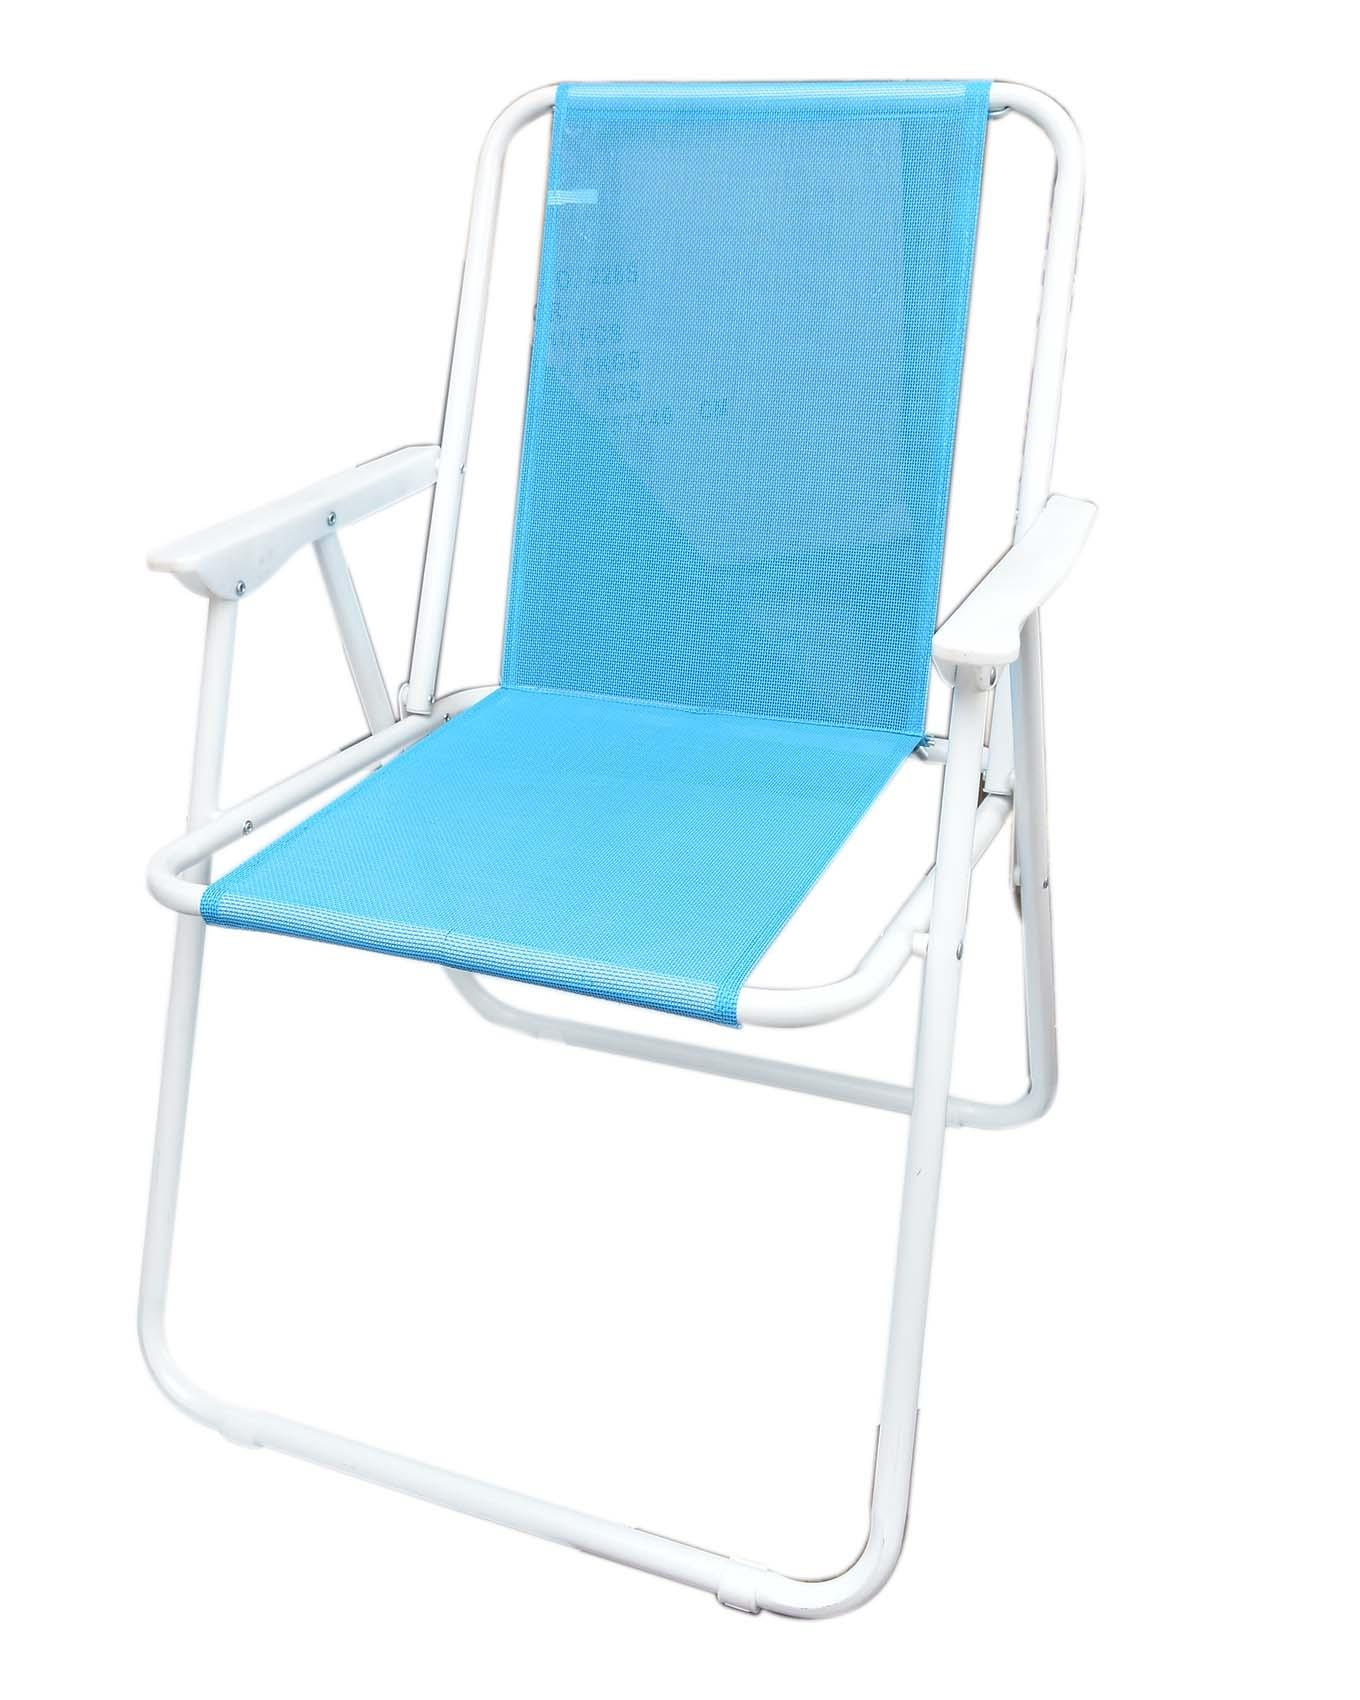 swing chair sri lanka swivel rocking chairs outdoor at best prices in daraz lk blue